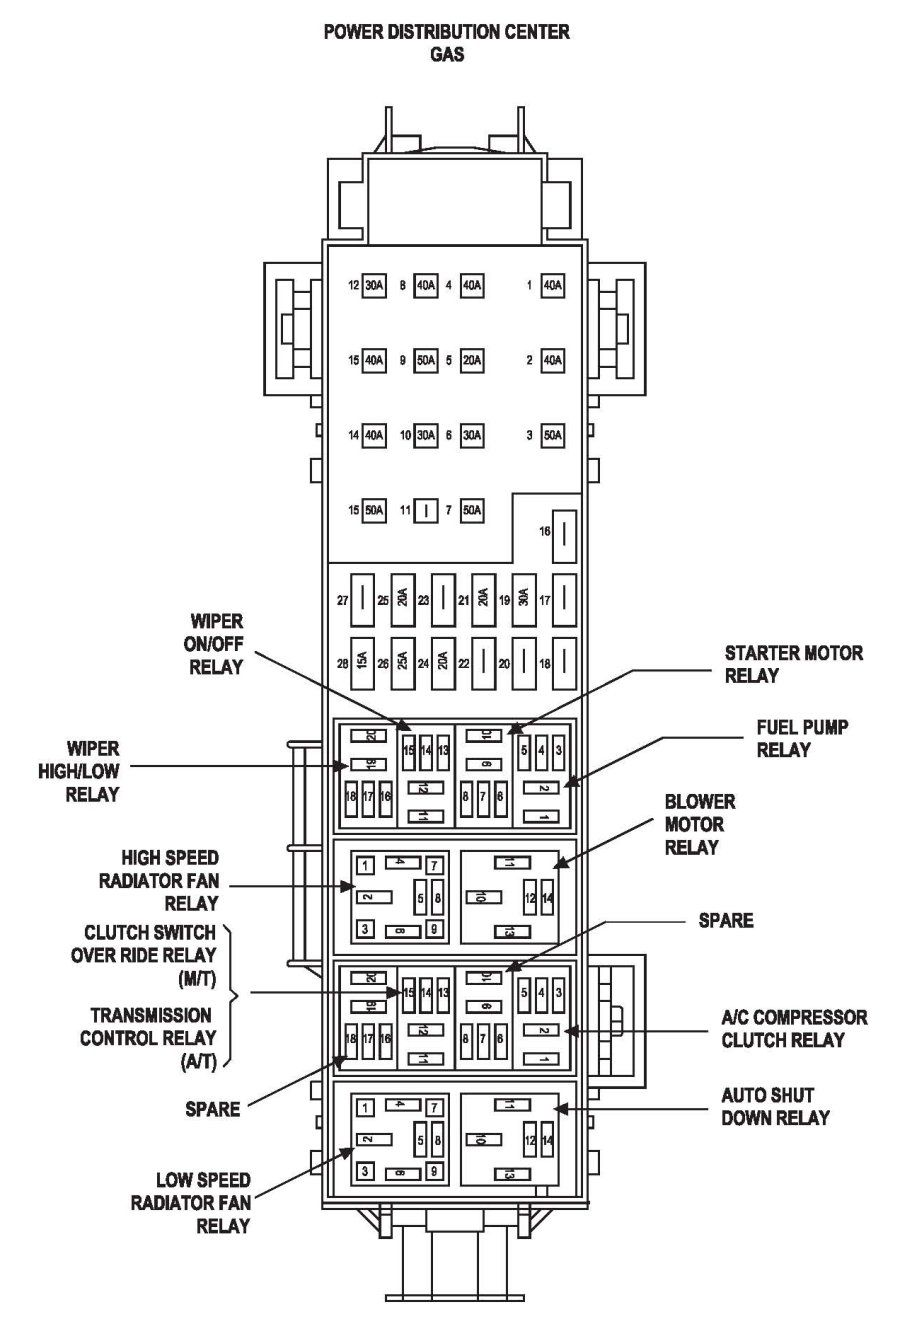 wrg 1669 fuse box suzuki grand vitara 2001fuse box diagram 2001 jeep wrangler starting know [ 900 x 1336 Pixel ]